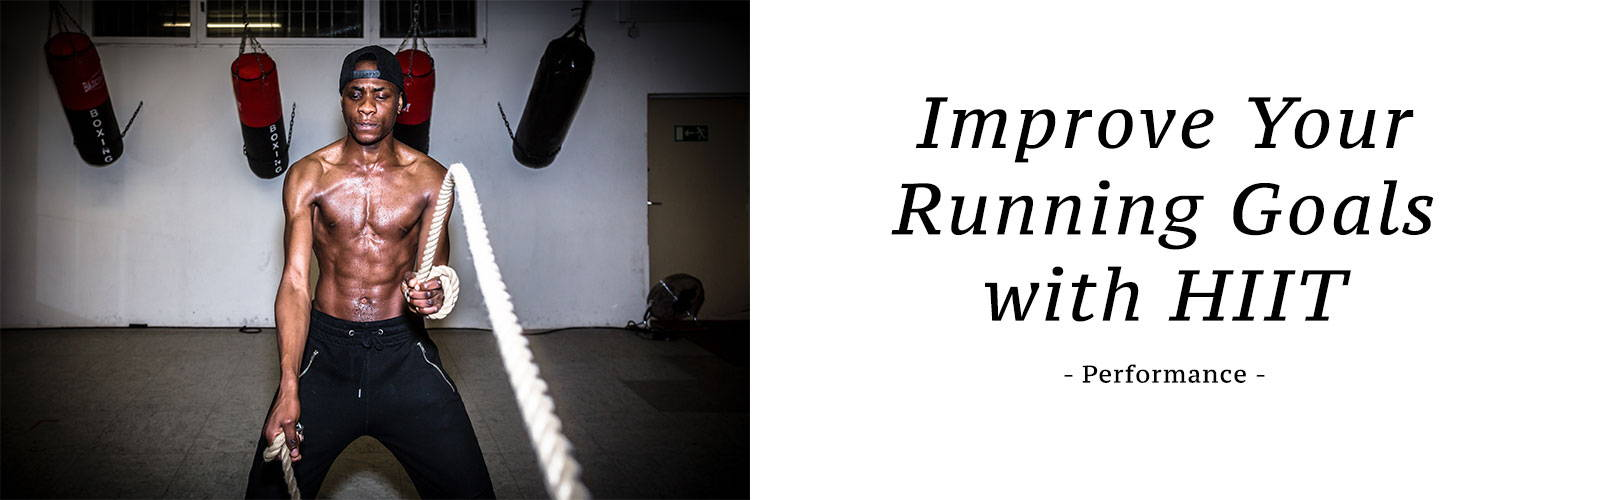 Improve Your Running Goals with HIIT